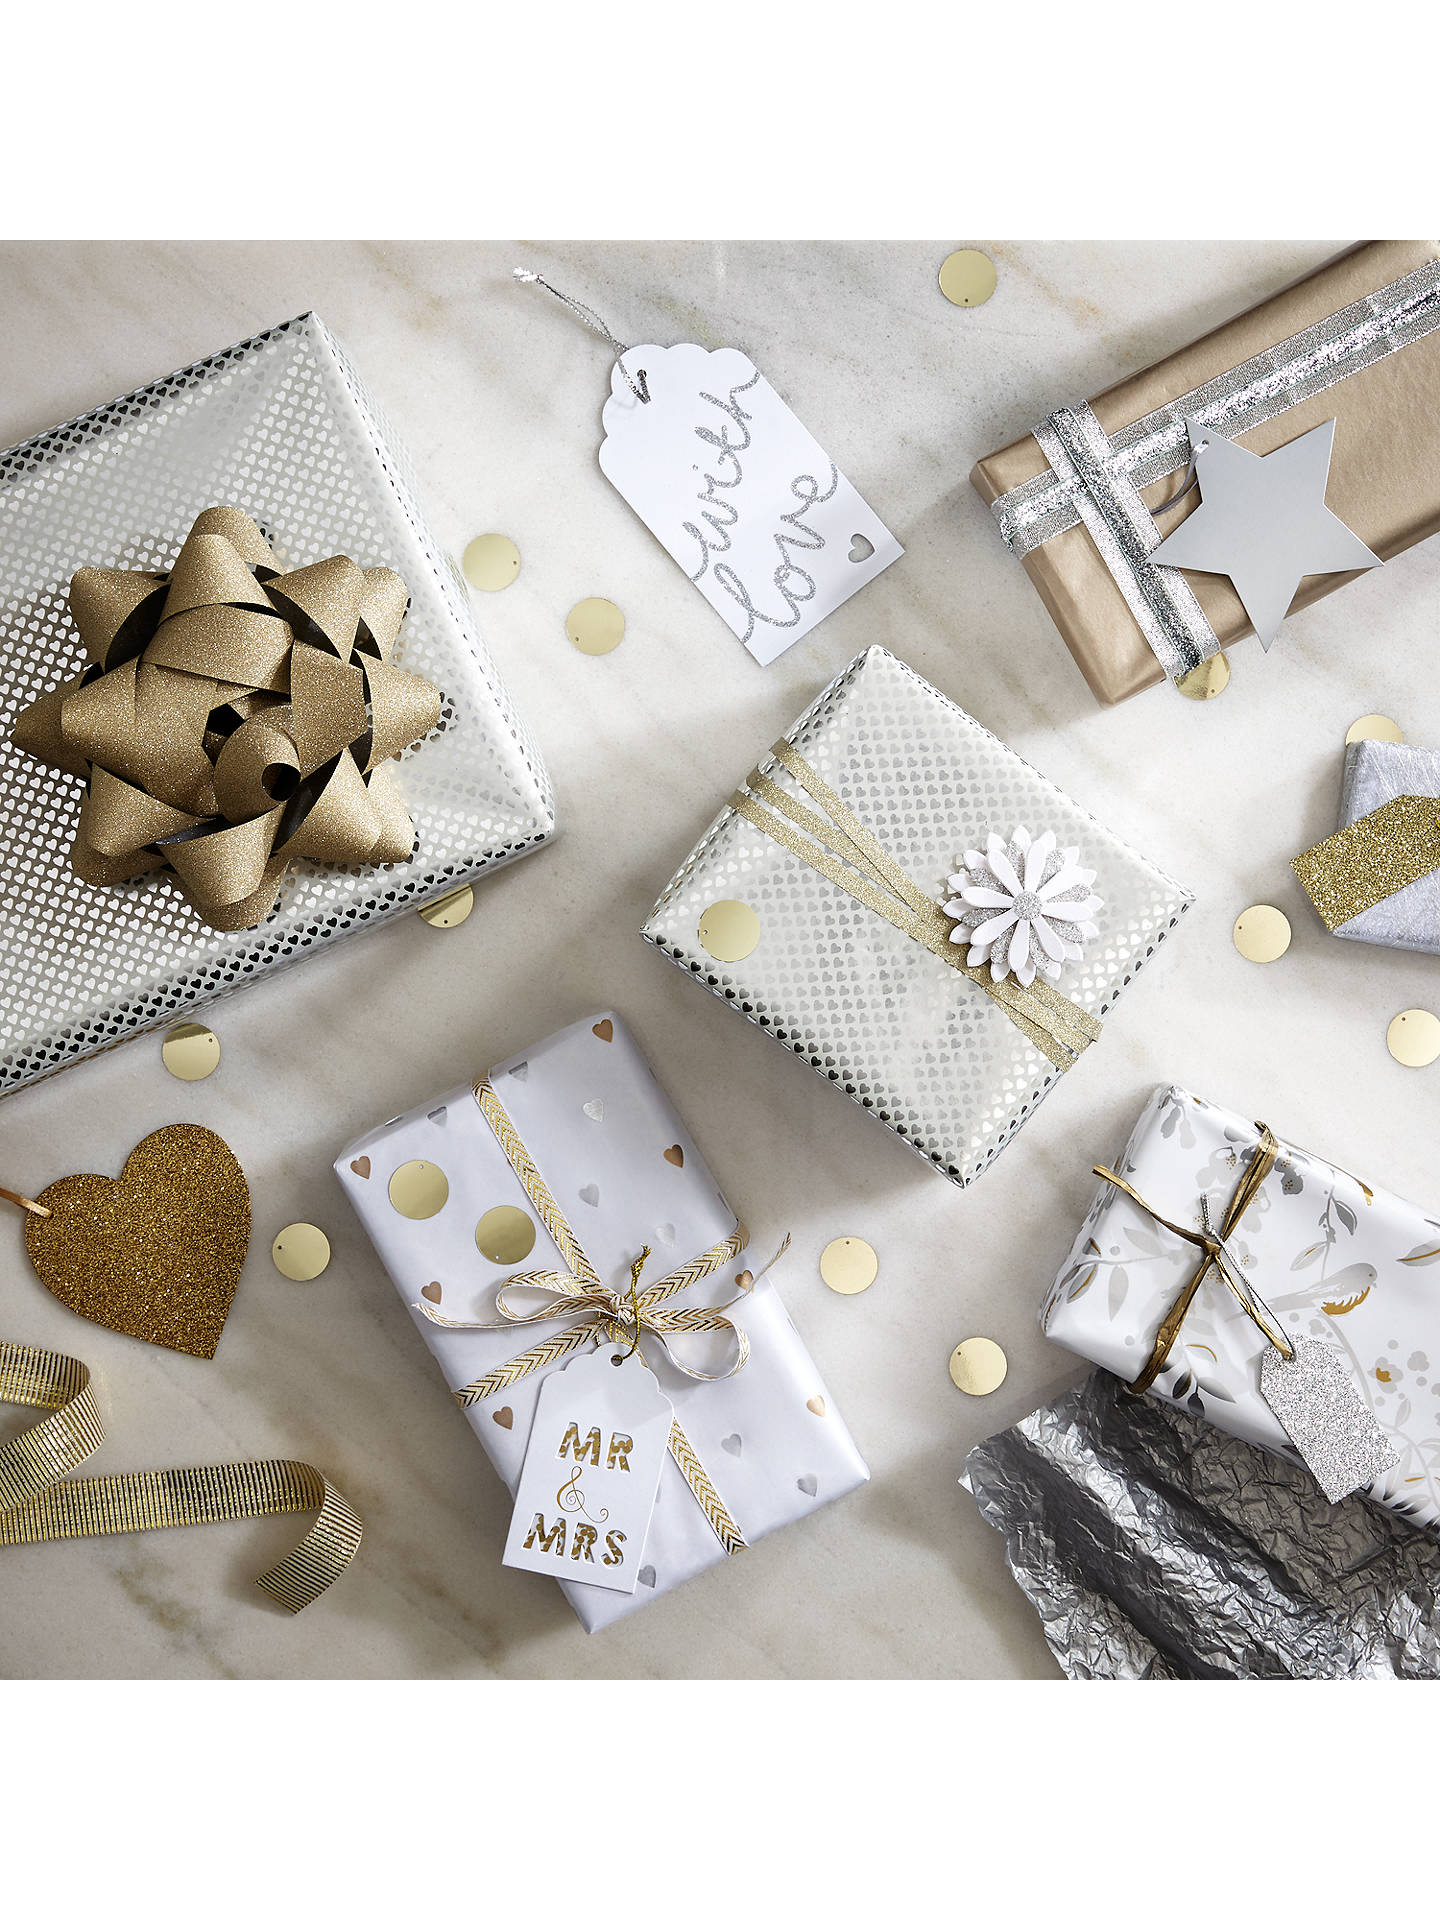 Buy John Lewis & Partners Silver Foil Gift Tags, Pack of 10 Online at johnlewis.com